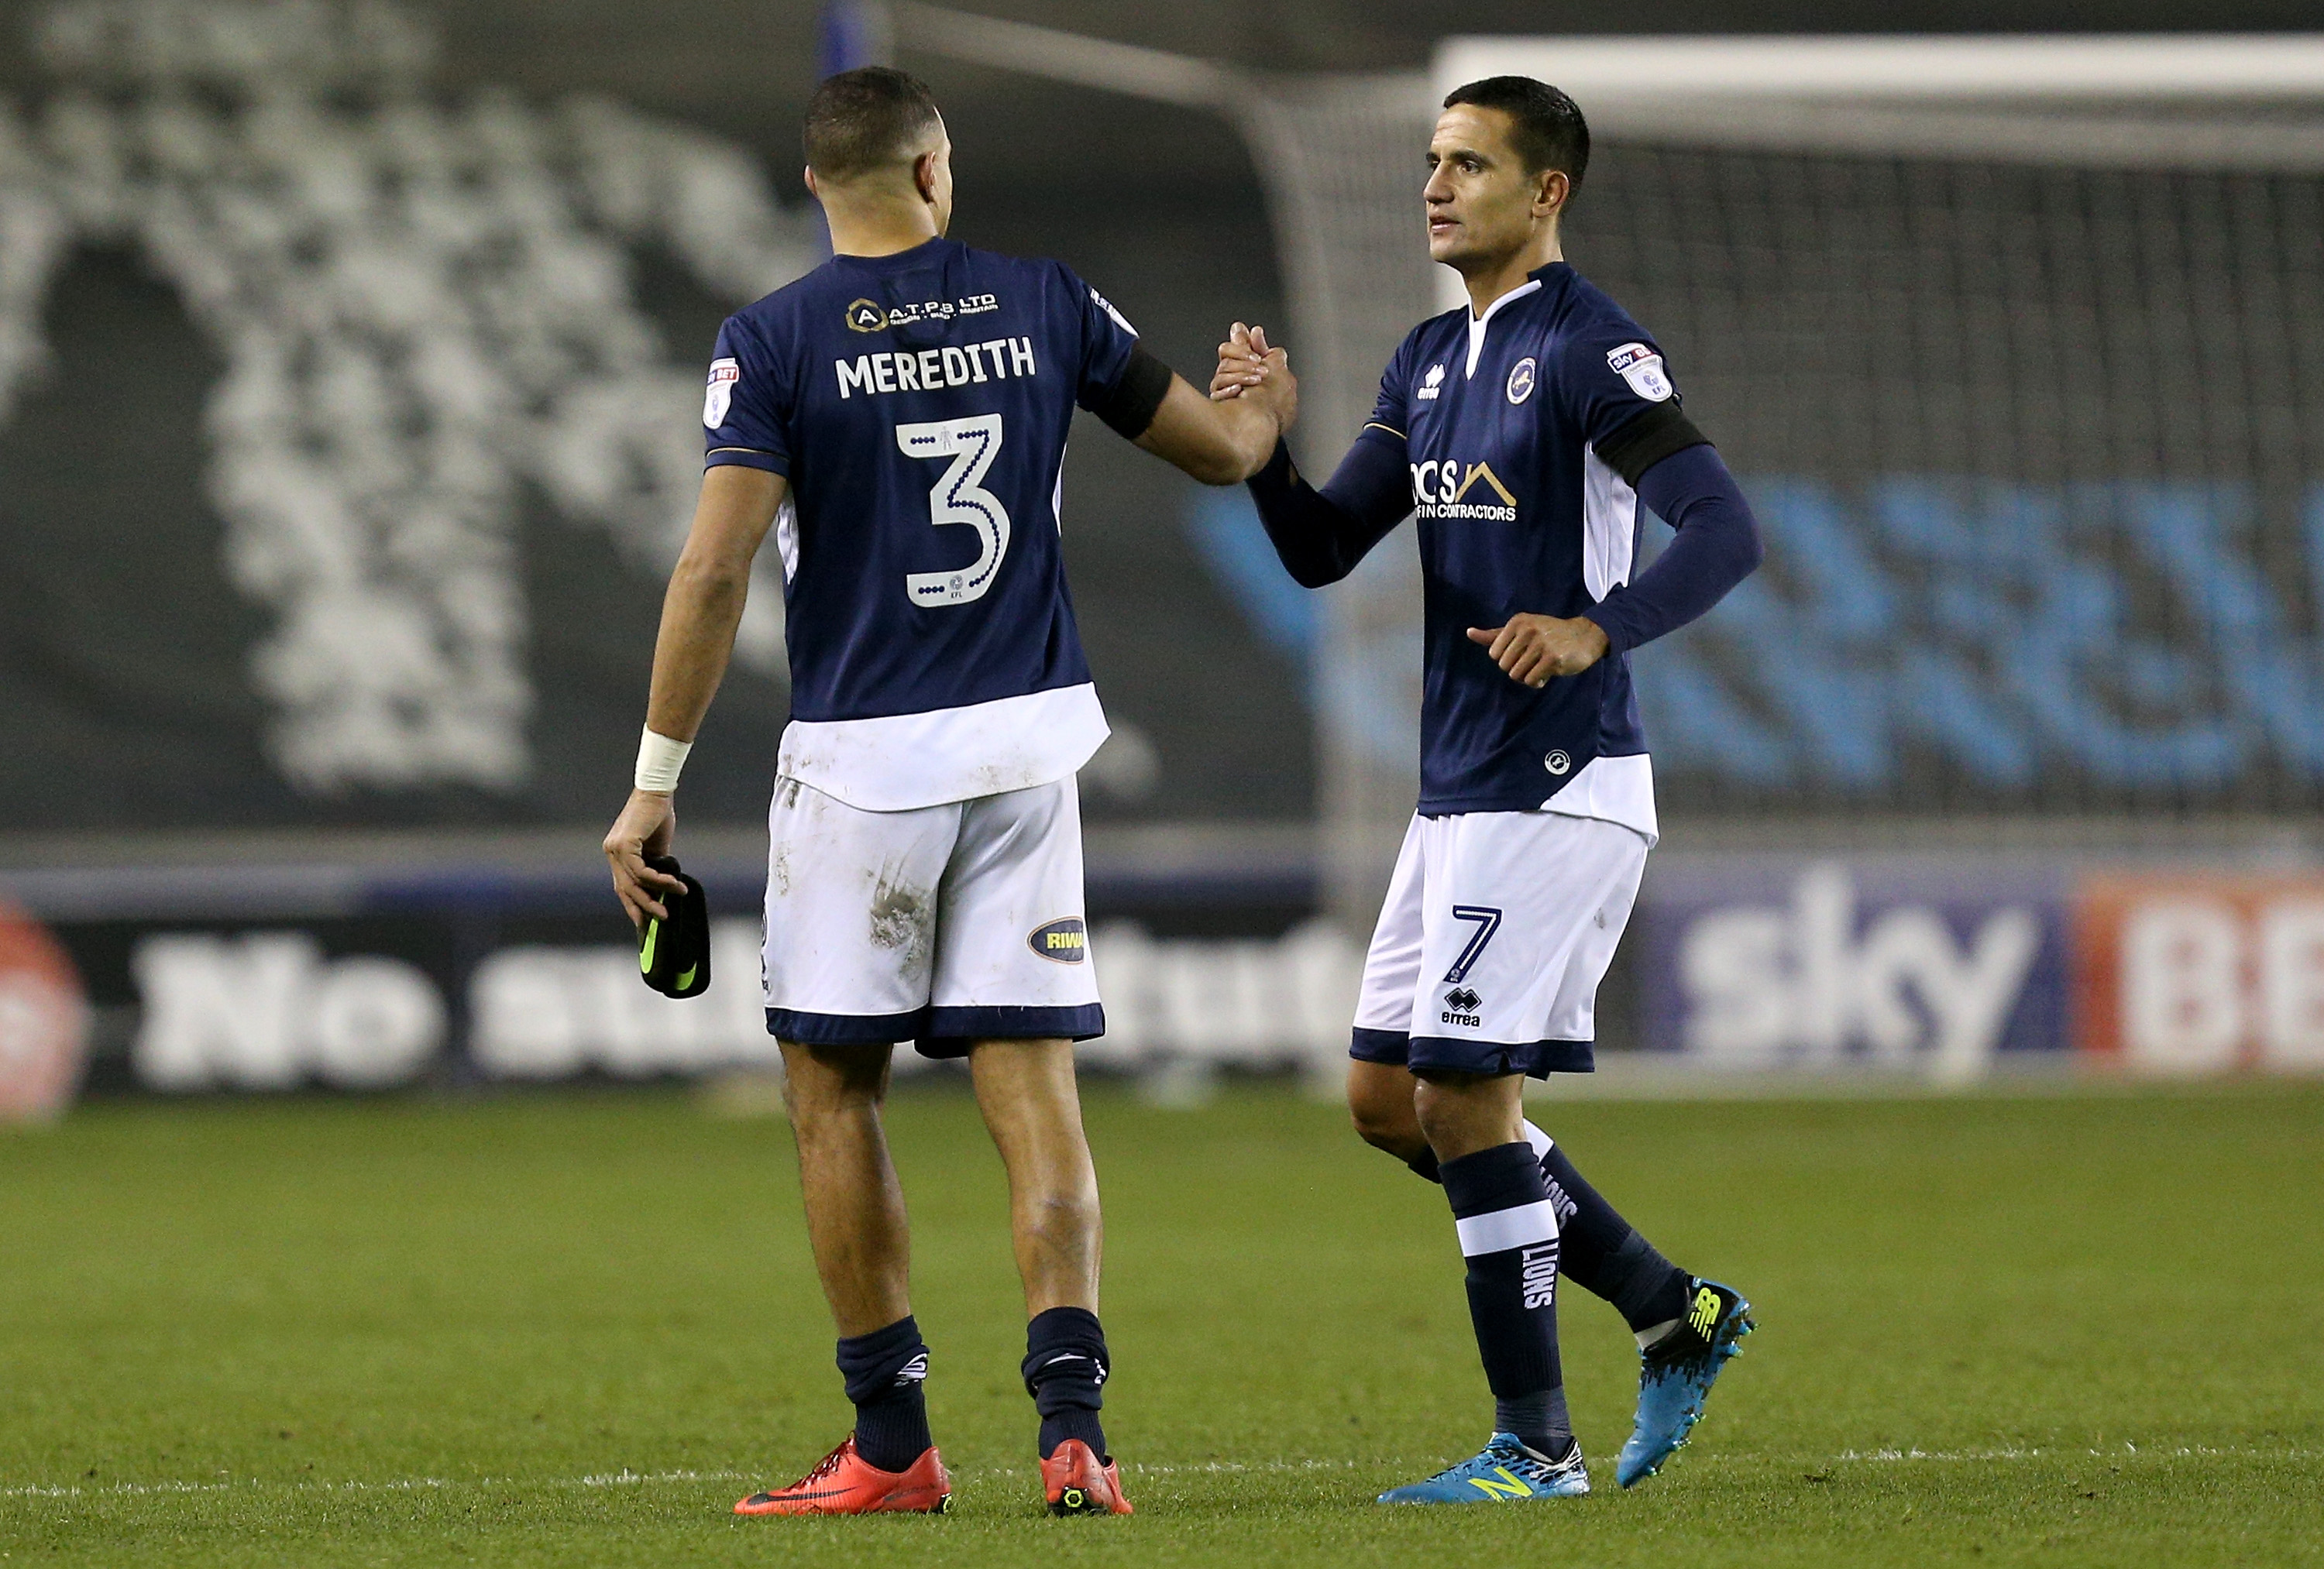 Tim Cahill and James Meredith for Millwall